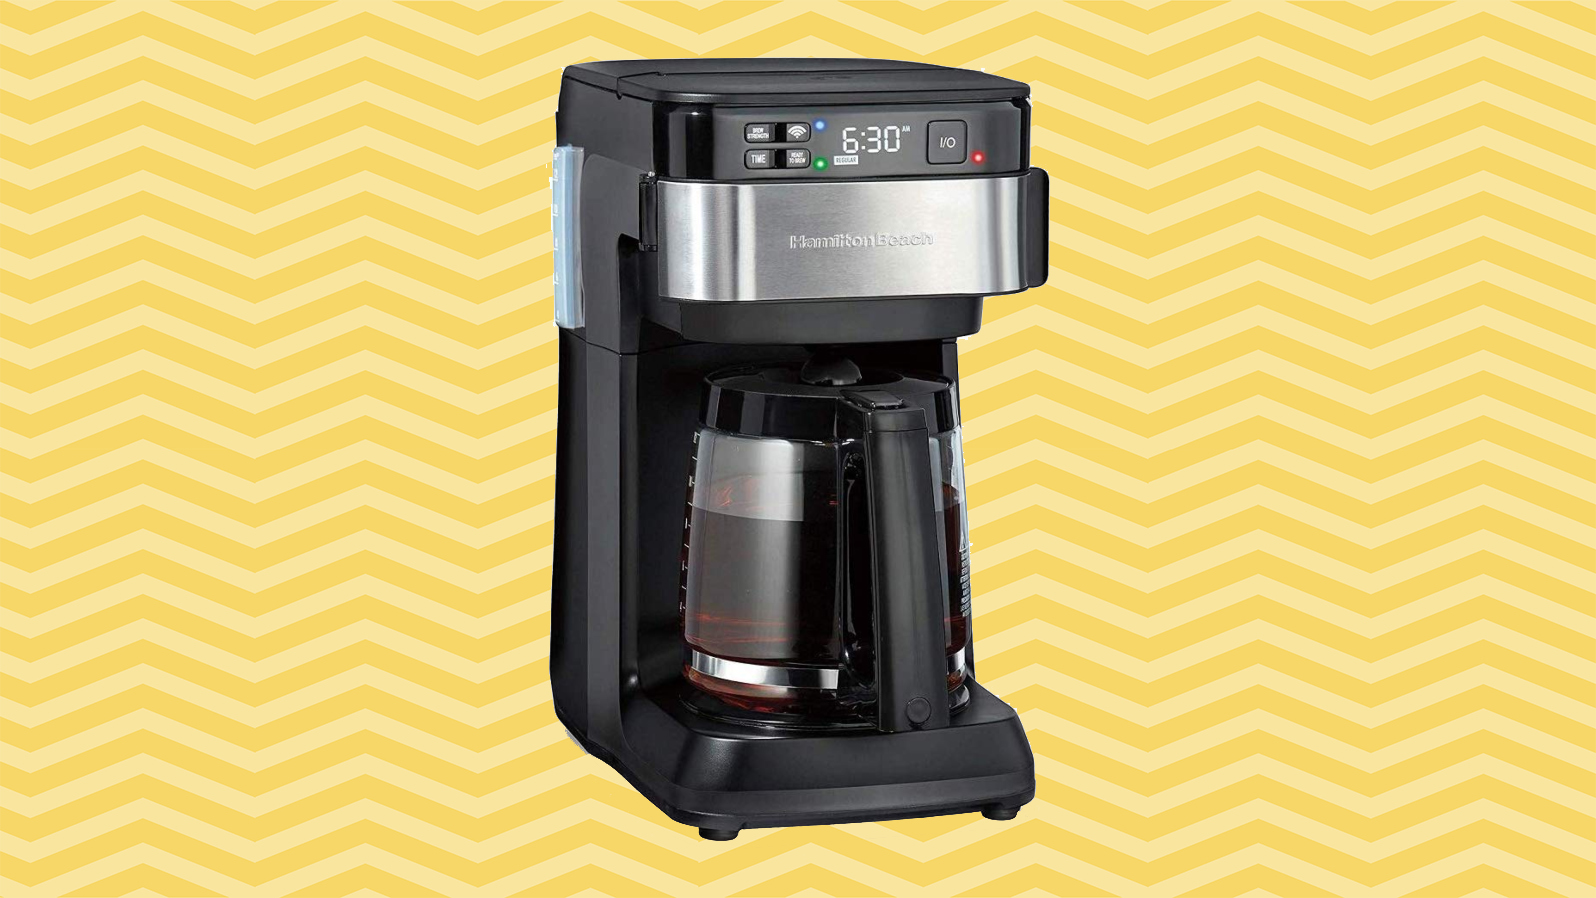 6 Clever Items 5/15/20 - Hamilton Beach Alexa-Enabled Coffee Maker yellow background tout